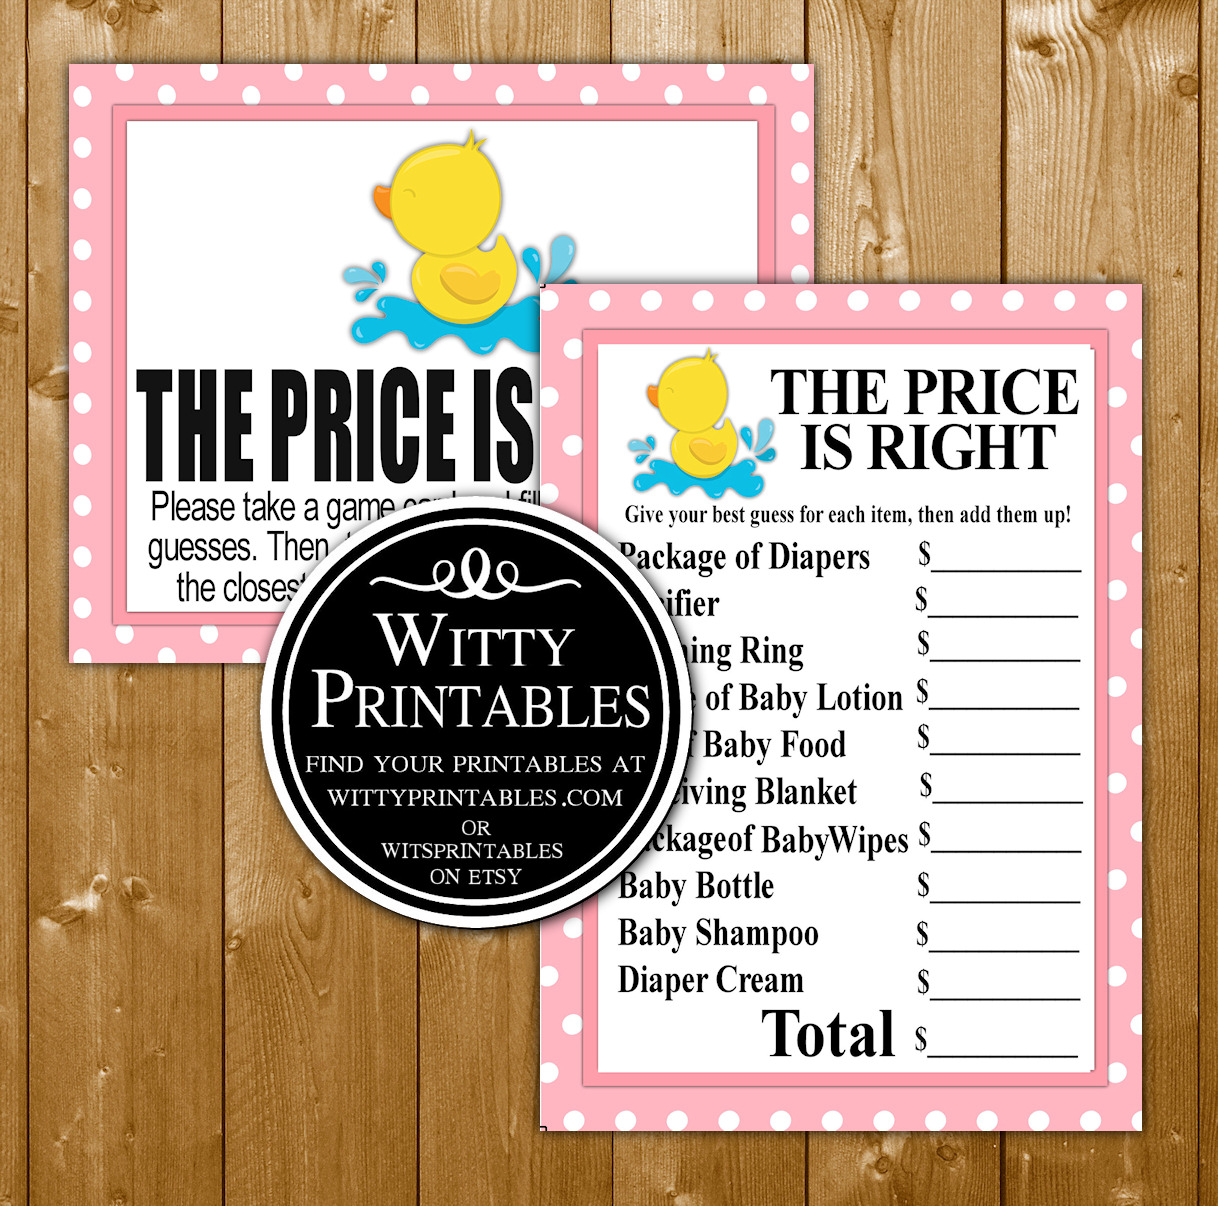 photograph about Baby Shower Price is Right Printable called Expense Is Straight Kid Shower Match Printable Red Duck Woman Topic